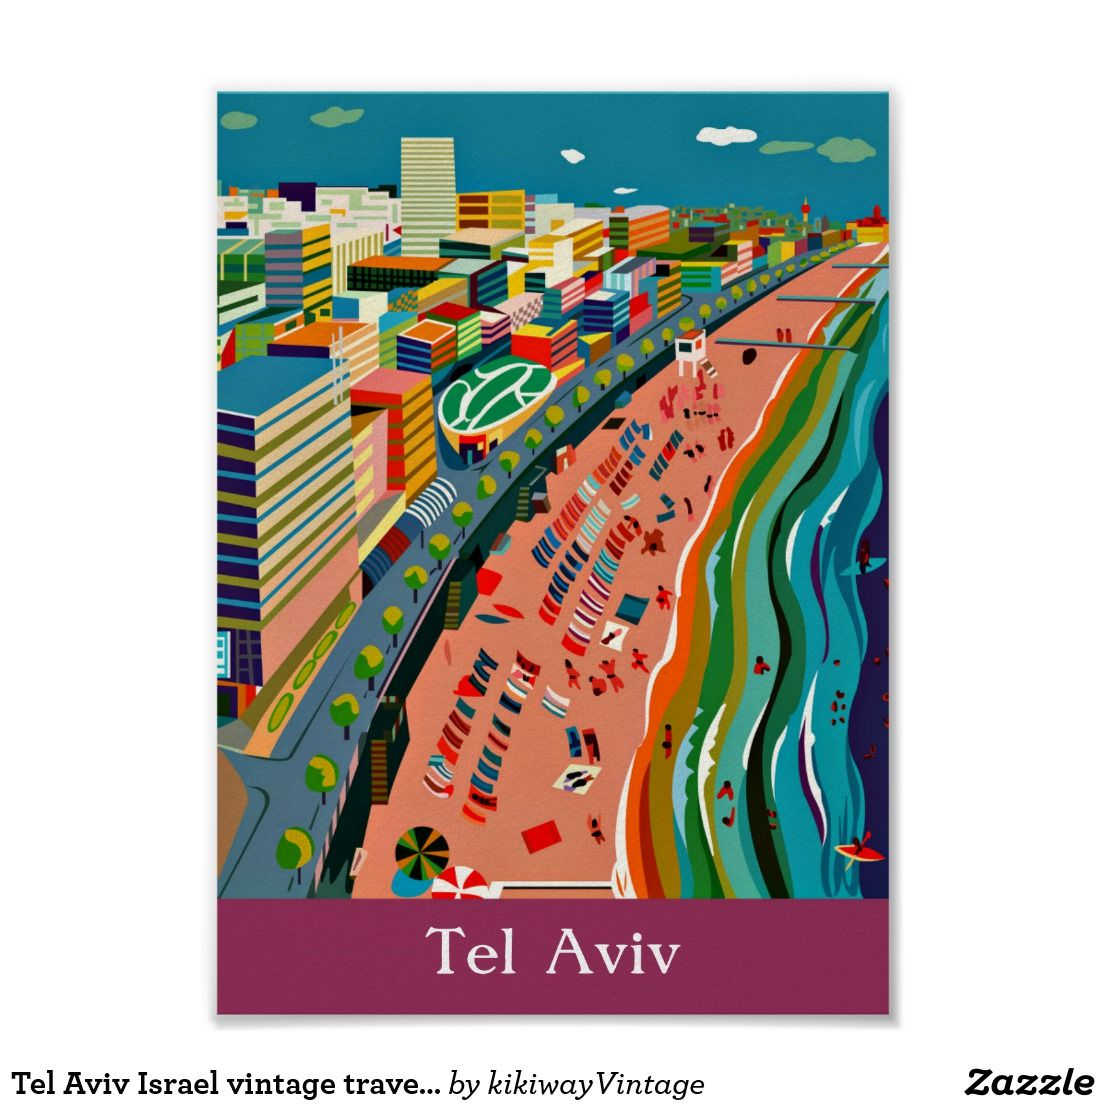 Zazzle poster design - Tel Aviv Israel Vintage Travel Tourism Ad Poster